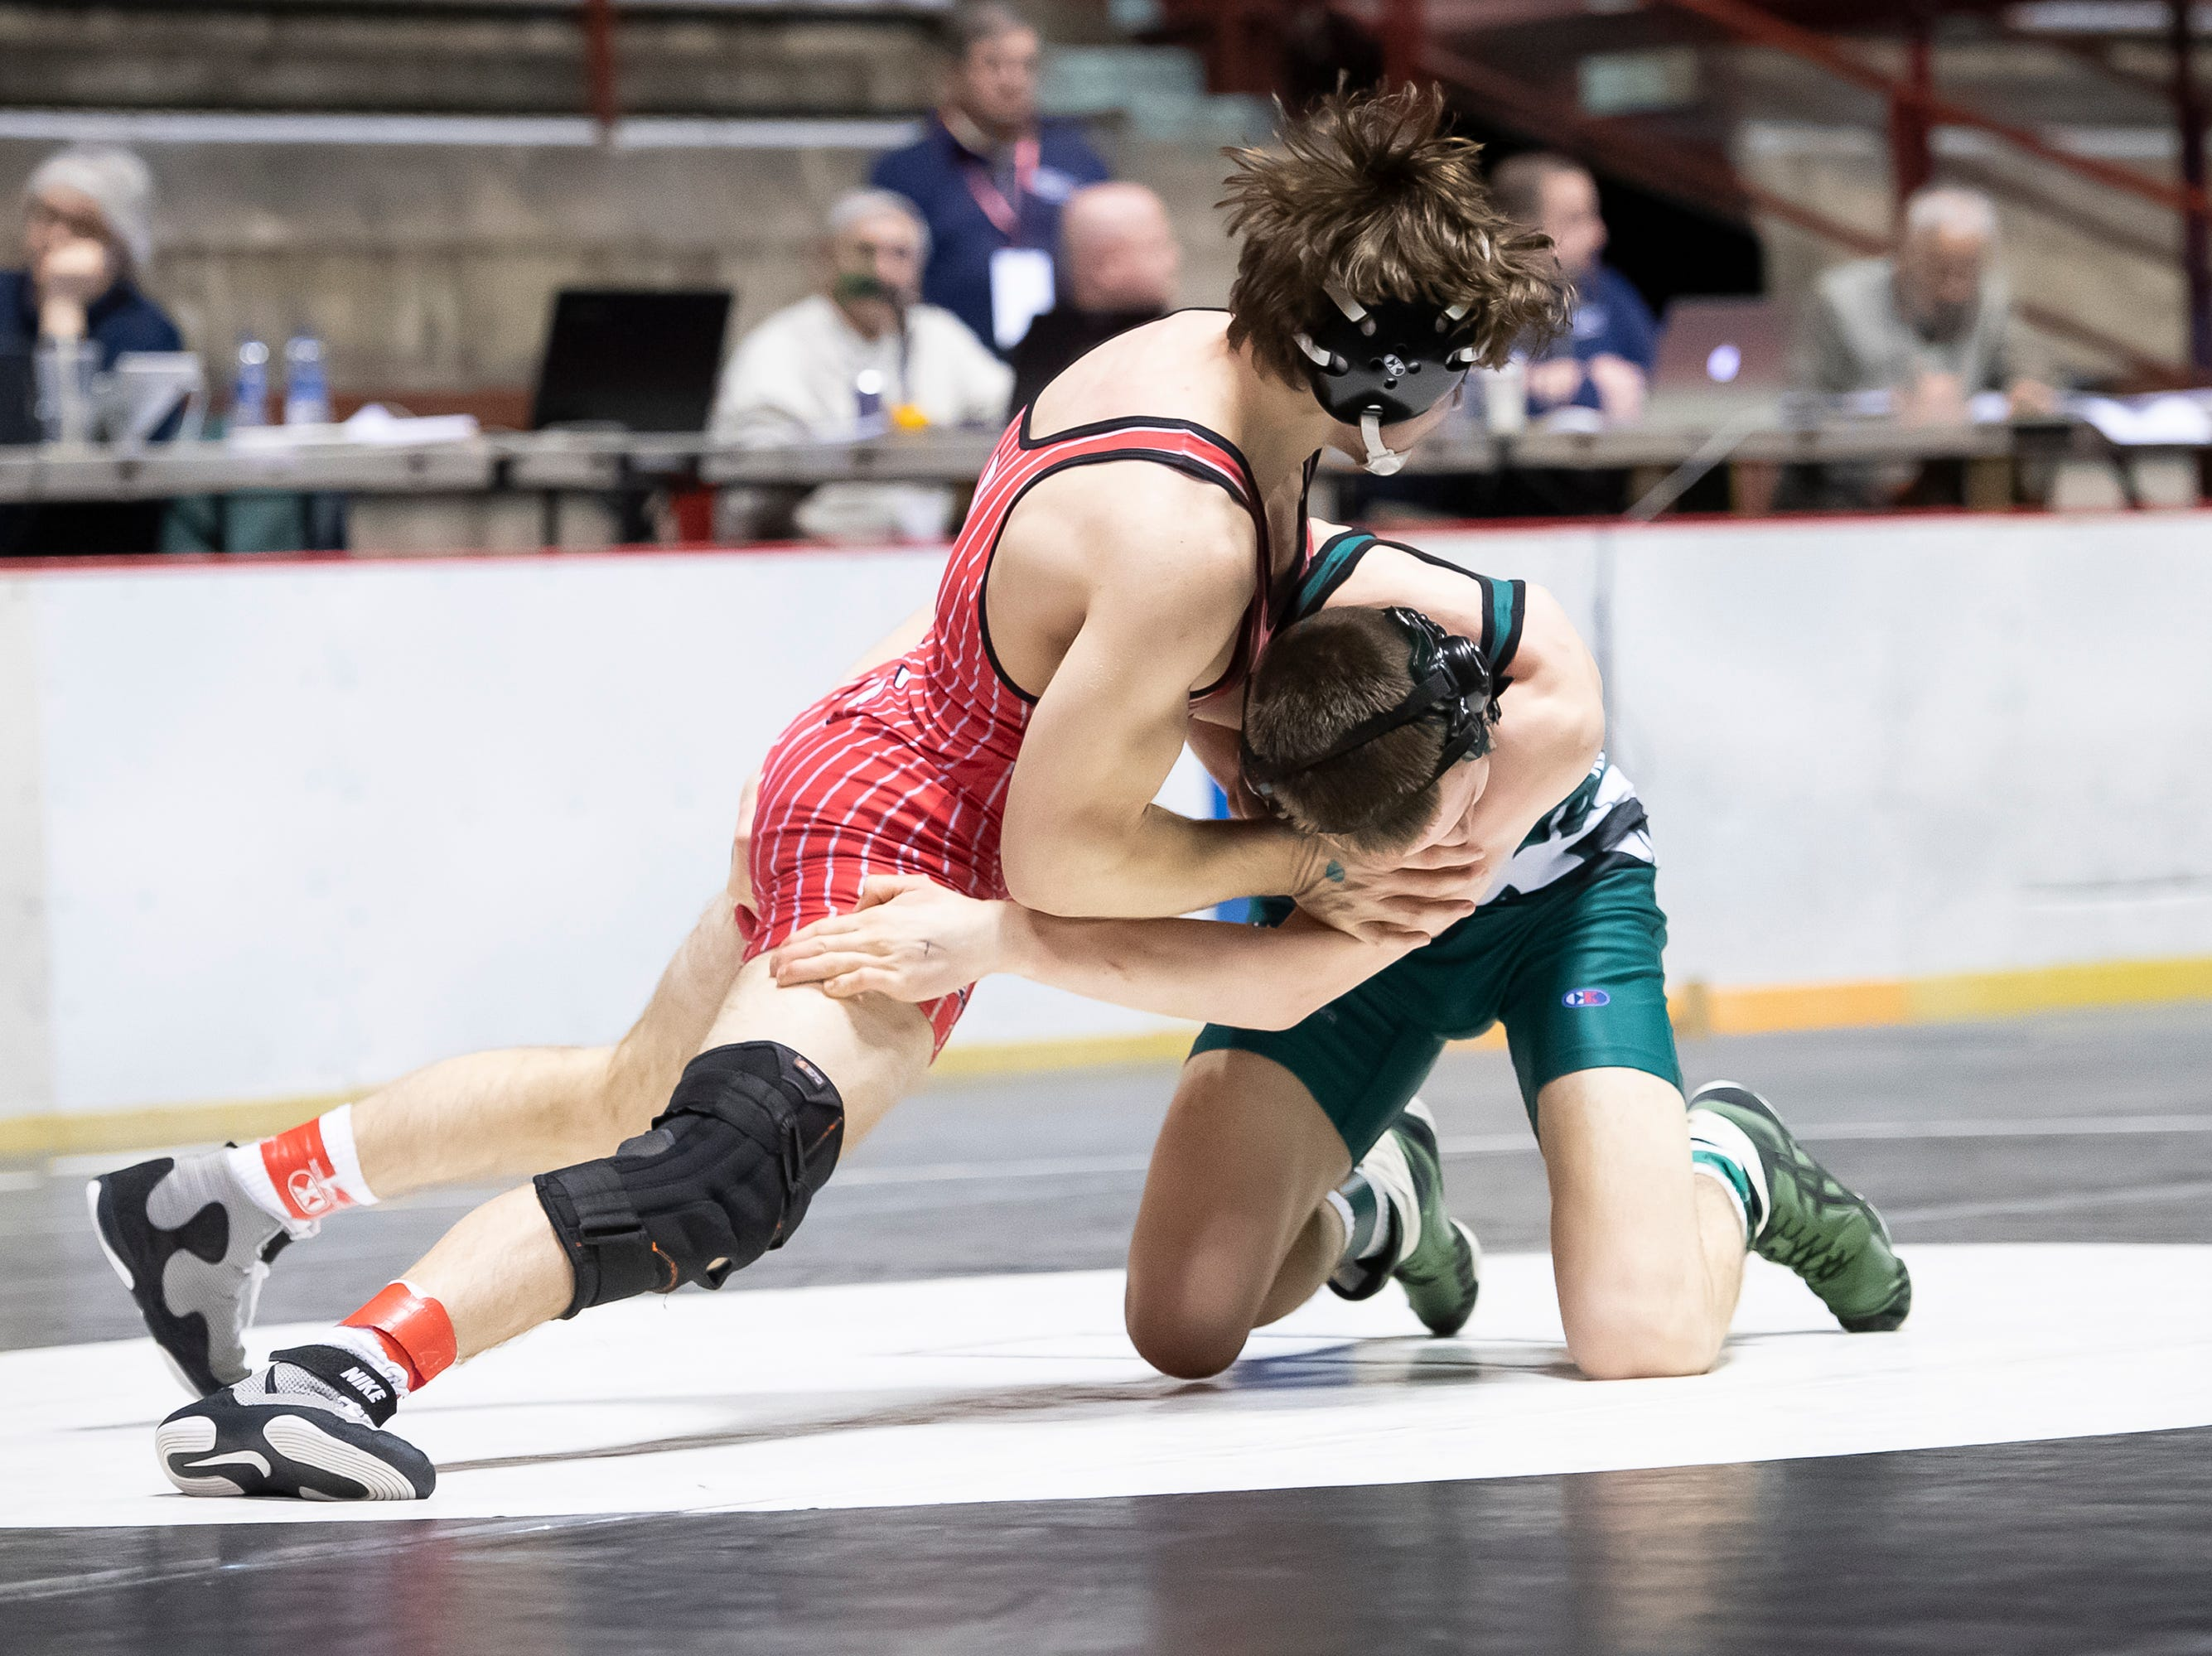 Bermudian Springs' Alijah Wheeler, top, wrestles West Perry's Caden Morrison during a 160-pound semifinal bout at the District 3 wrestling championships at Hersheypark Arena Saturday, February 23, 2019. Morrison won by decision 7-4.